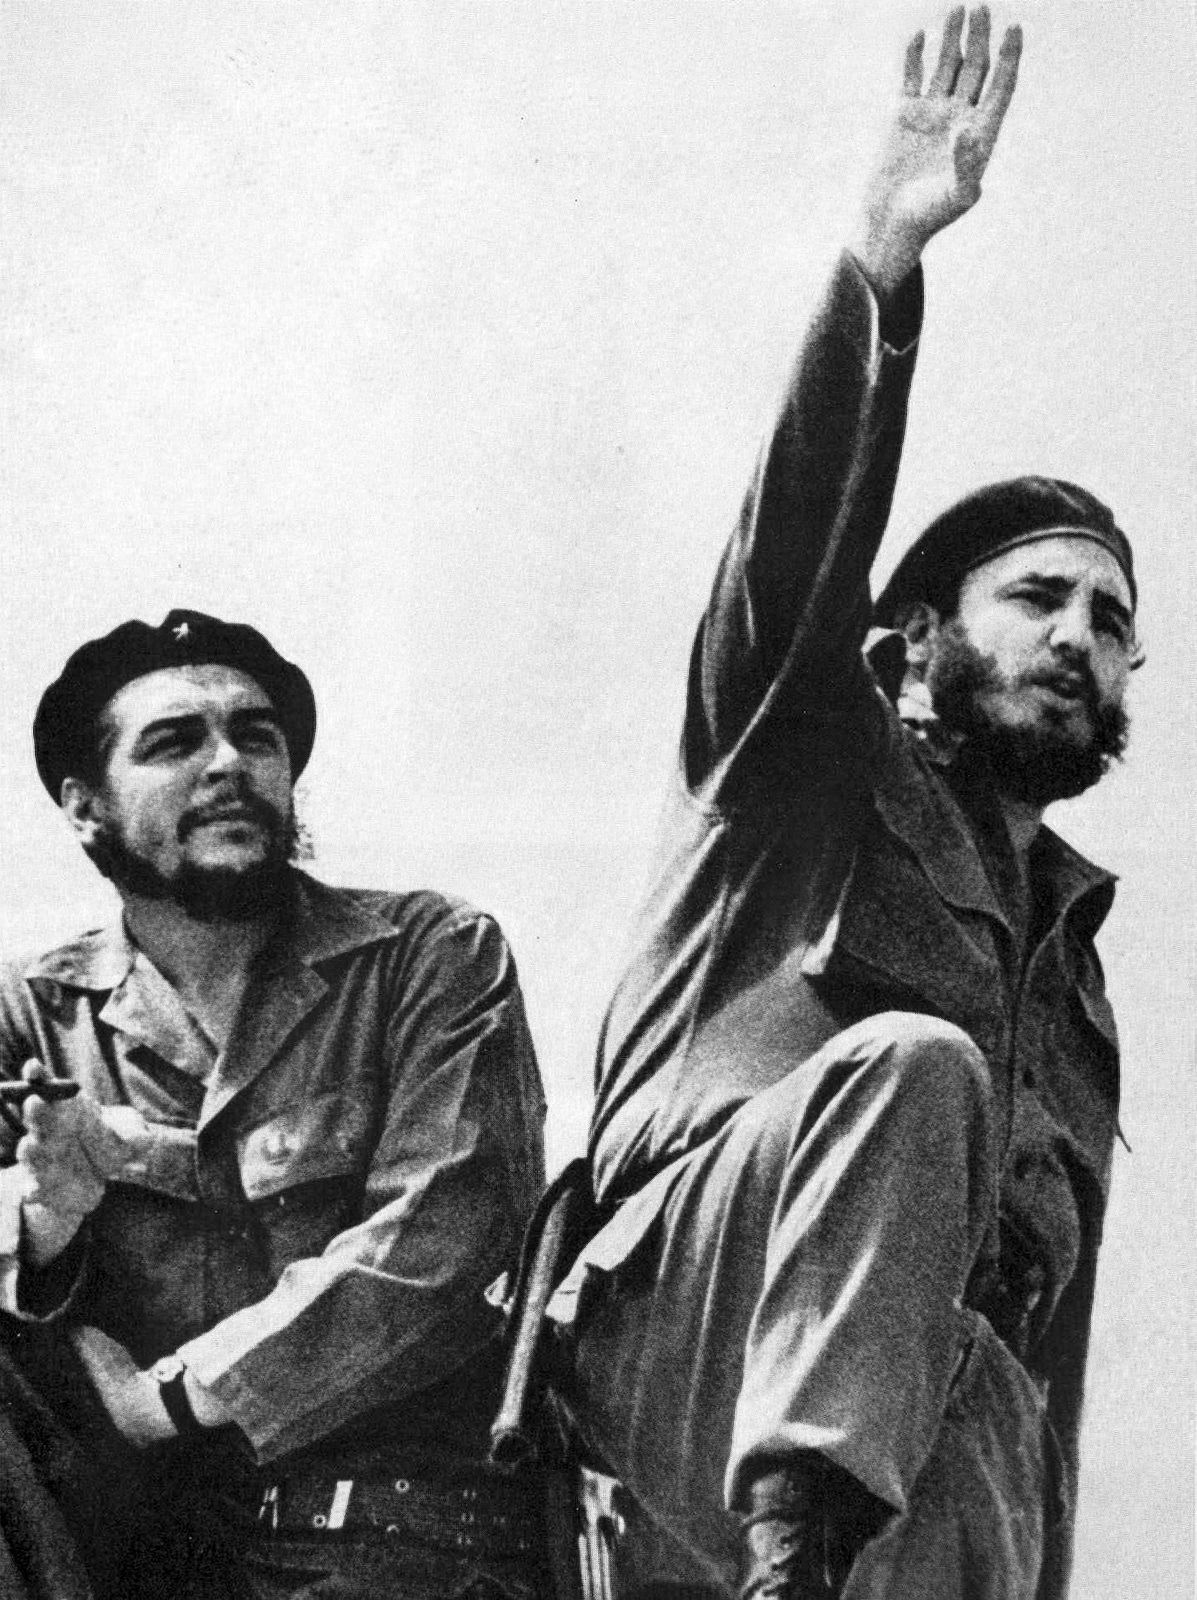 che guevara guevara left and fidel castro photographed by alberto korda in 1961